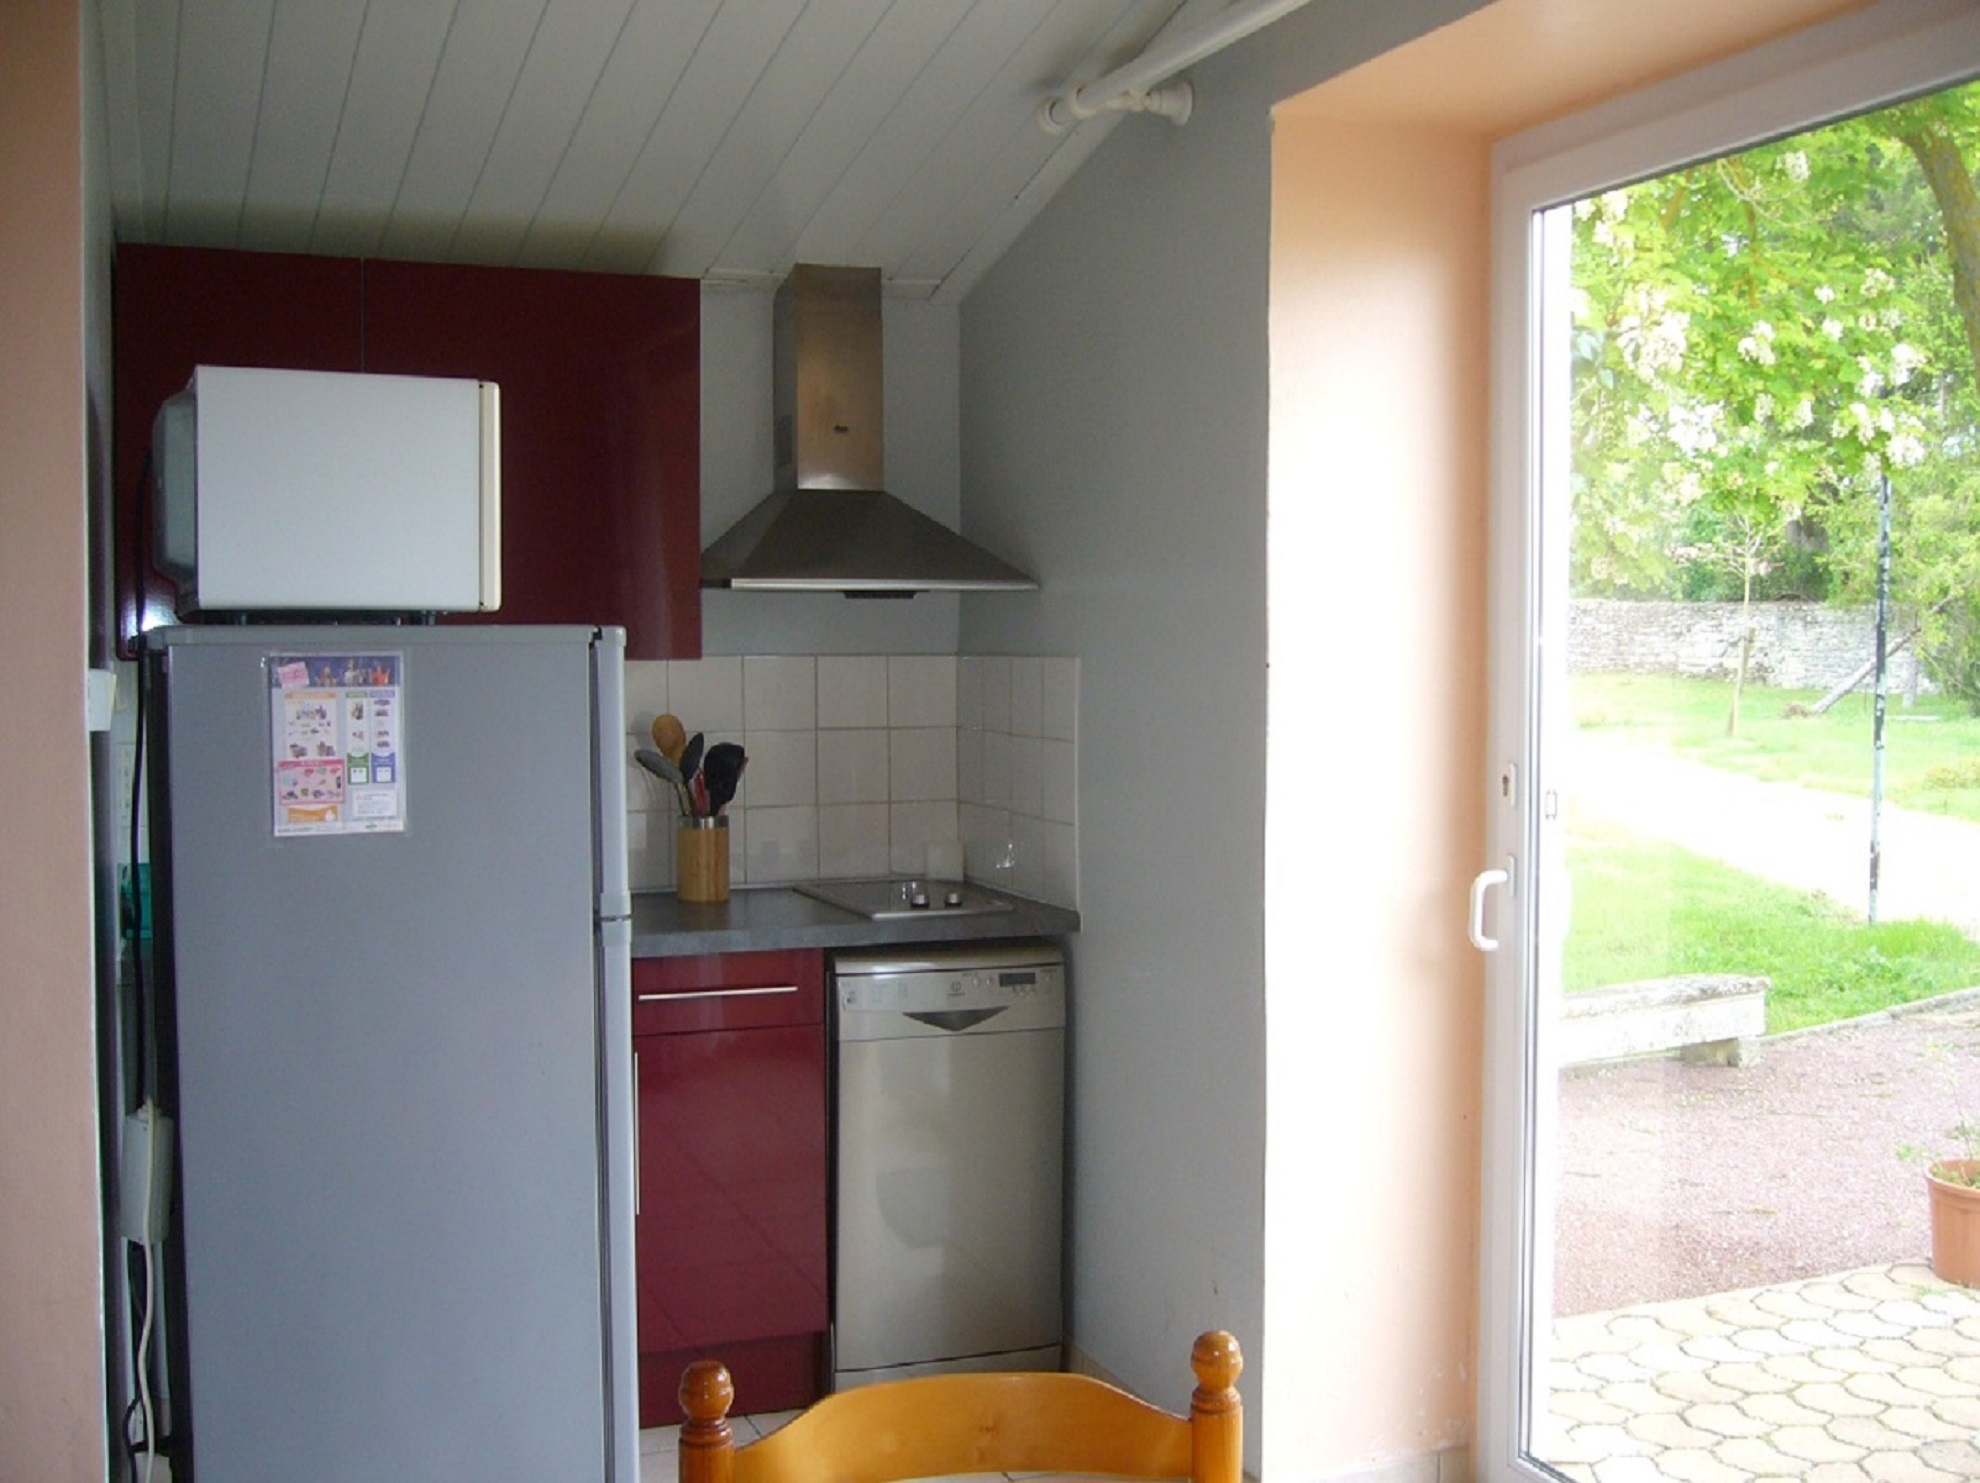 Kitchenette baie